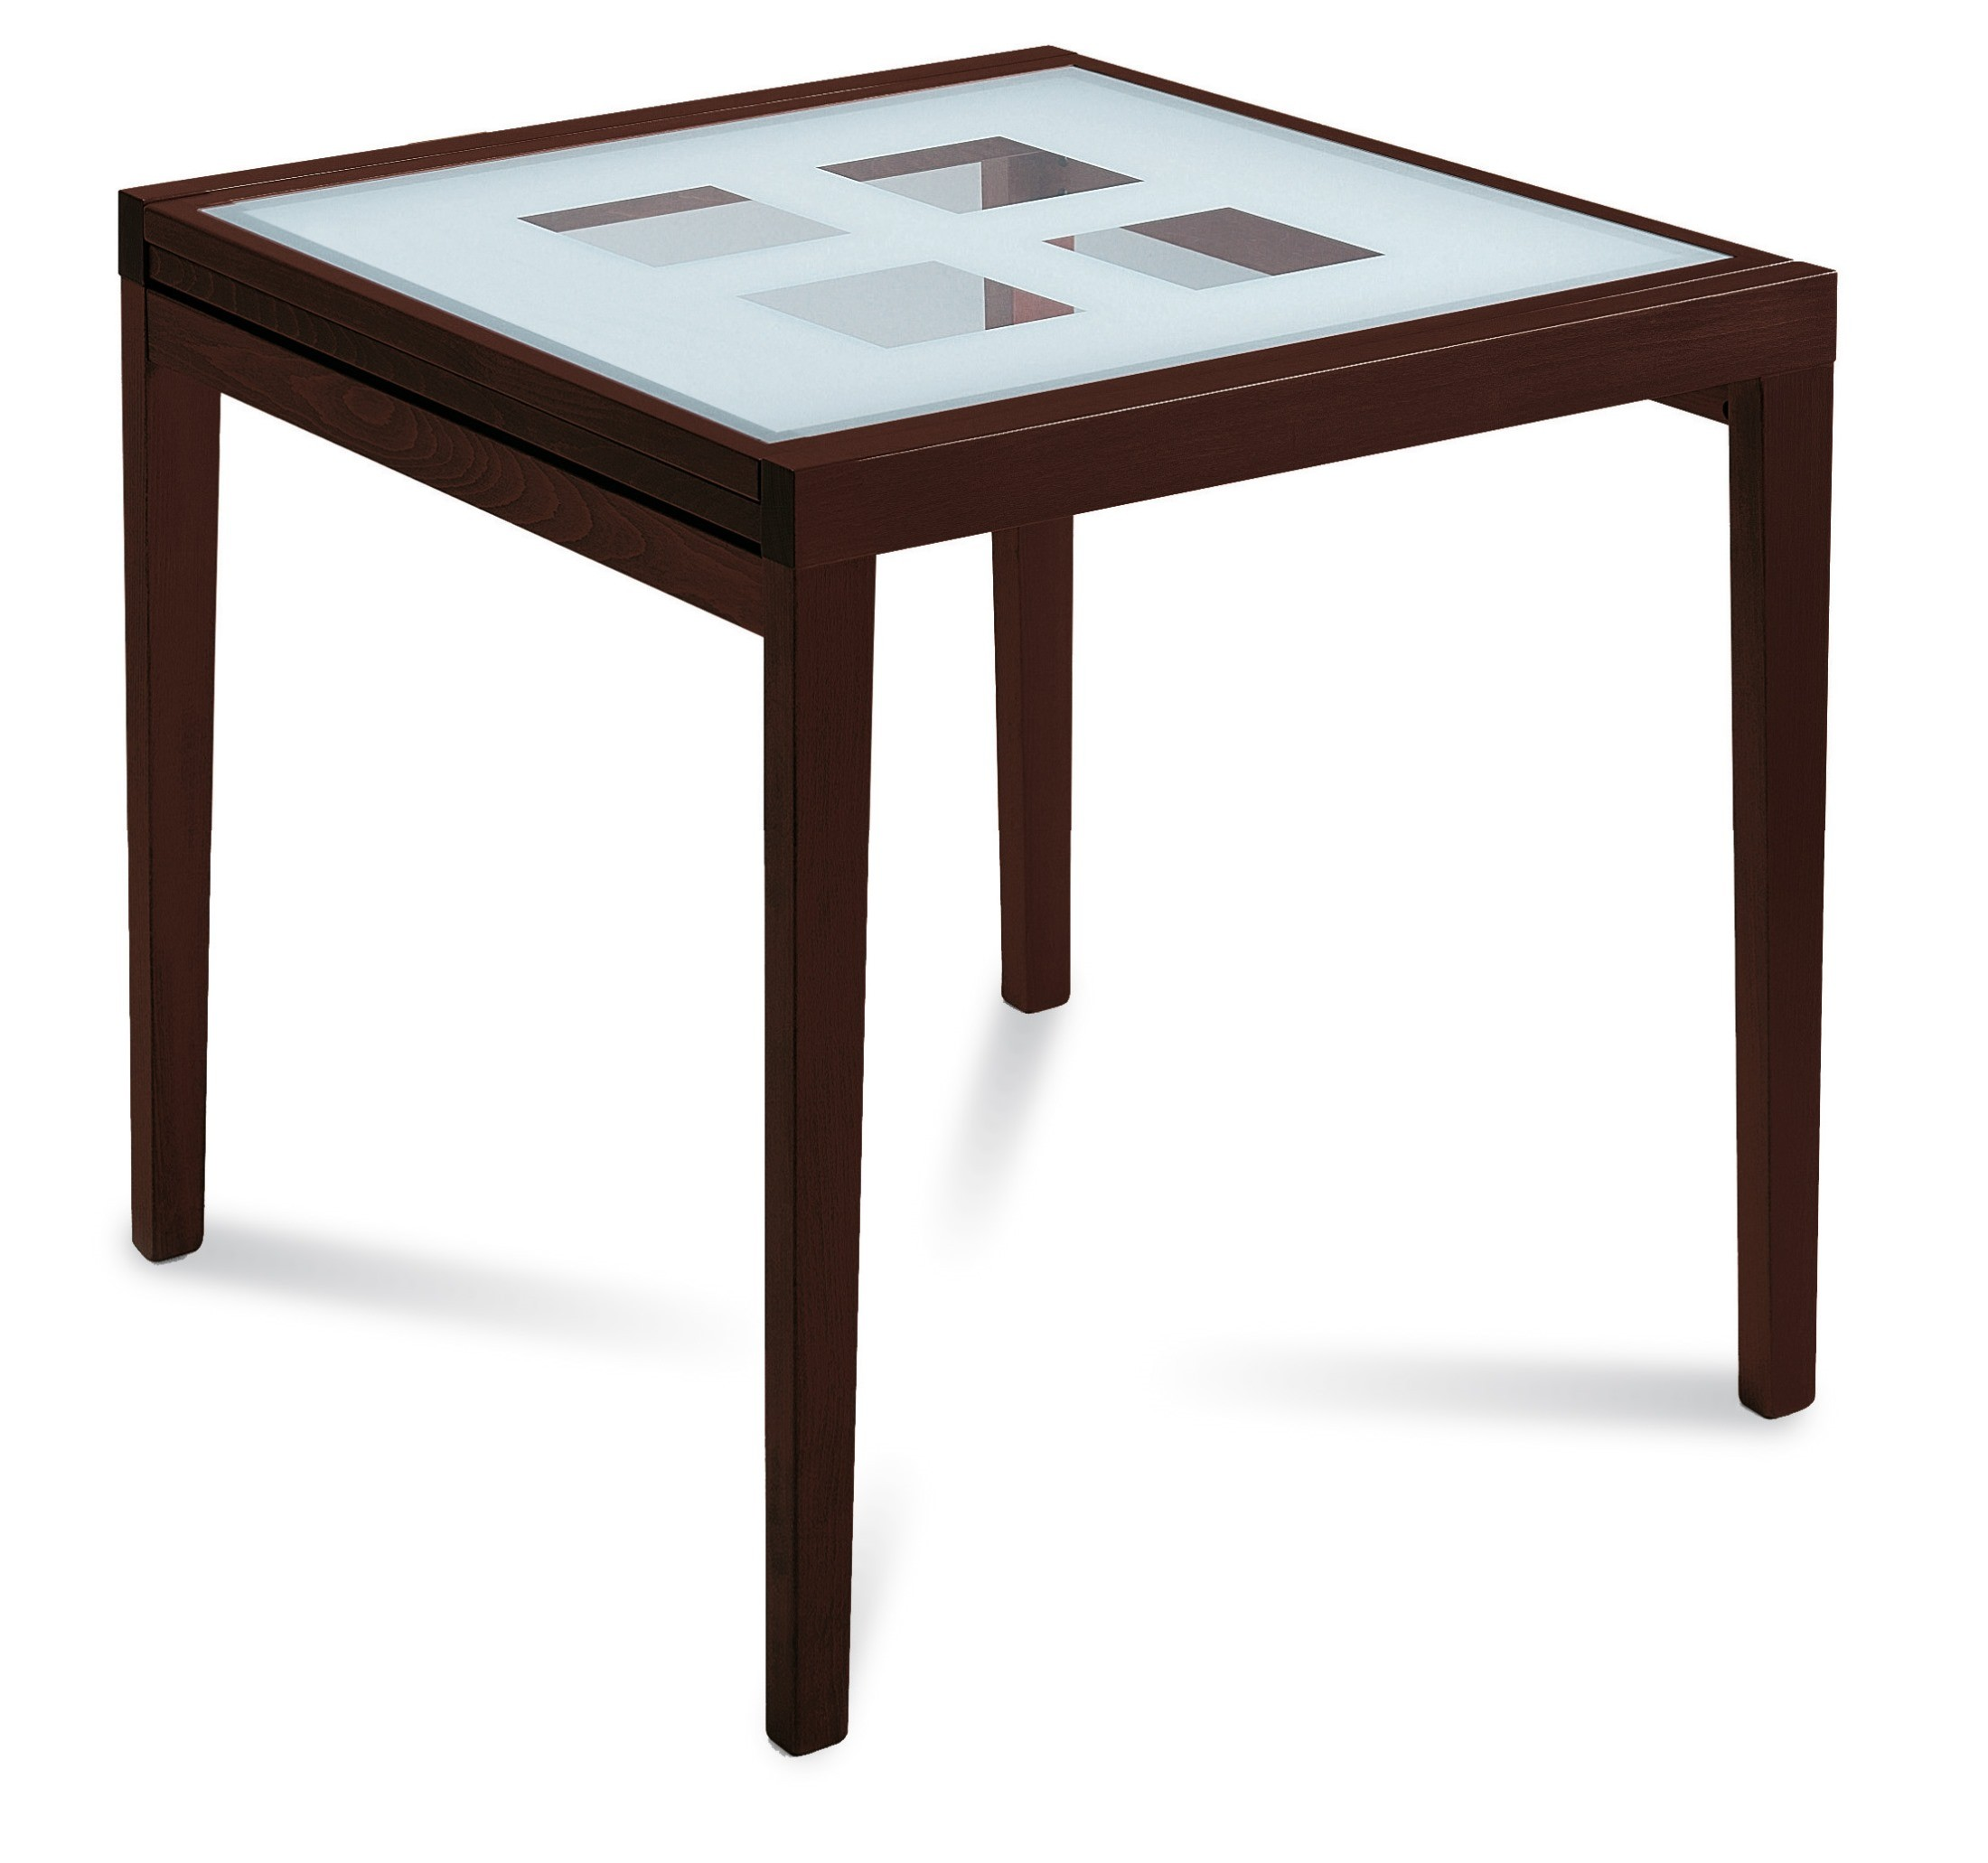 Poker Wenge Extendable Square Dining Table From Domitalia